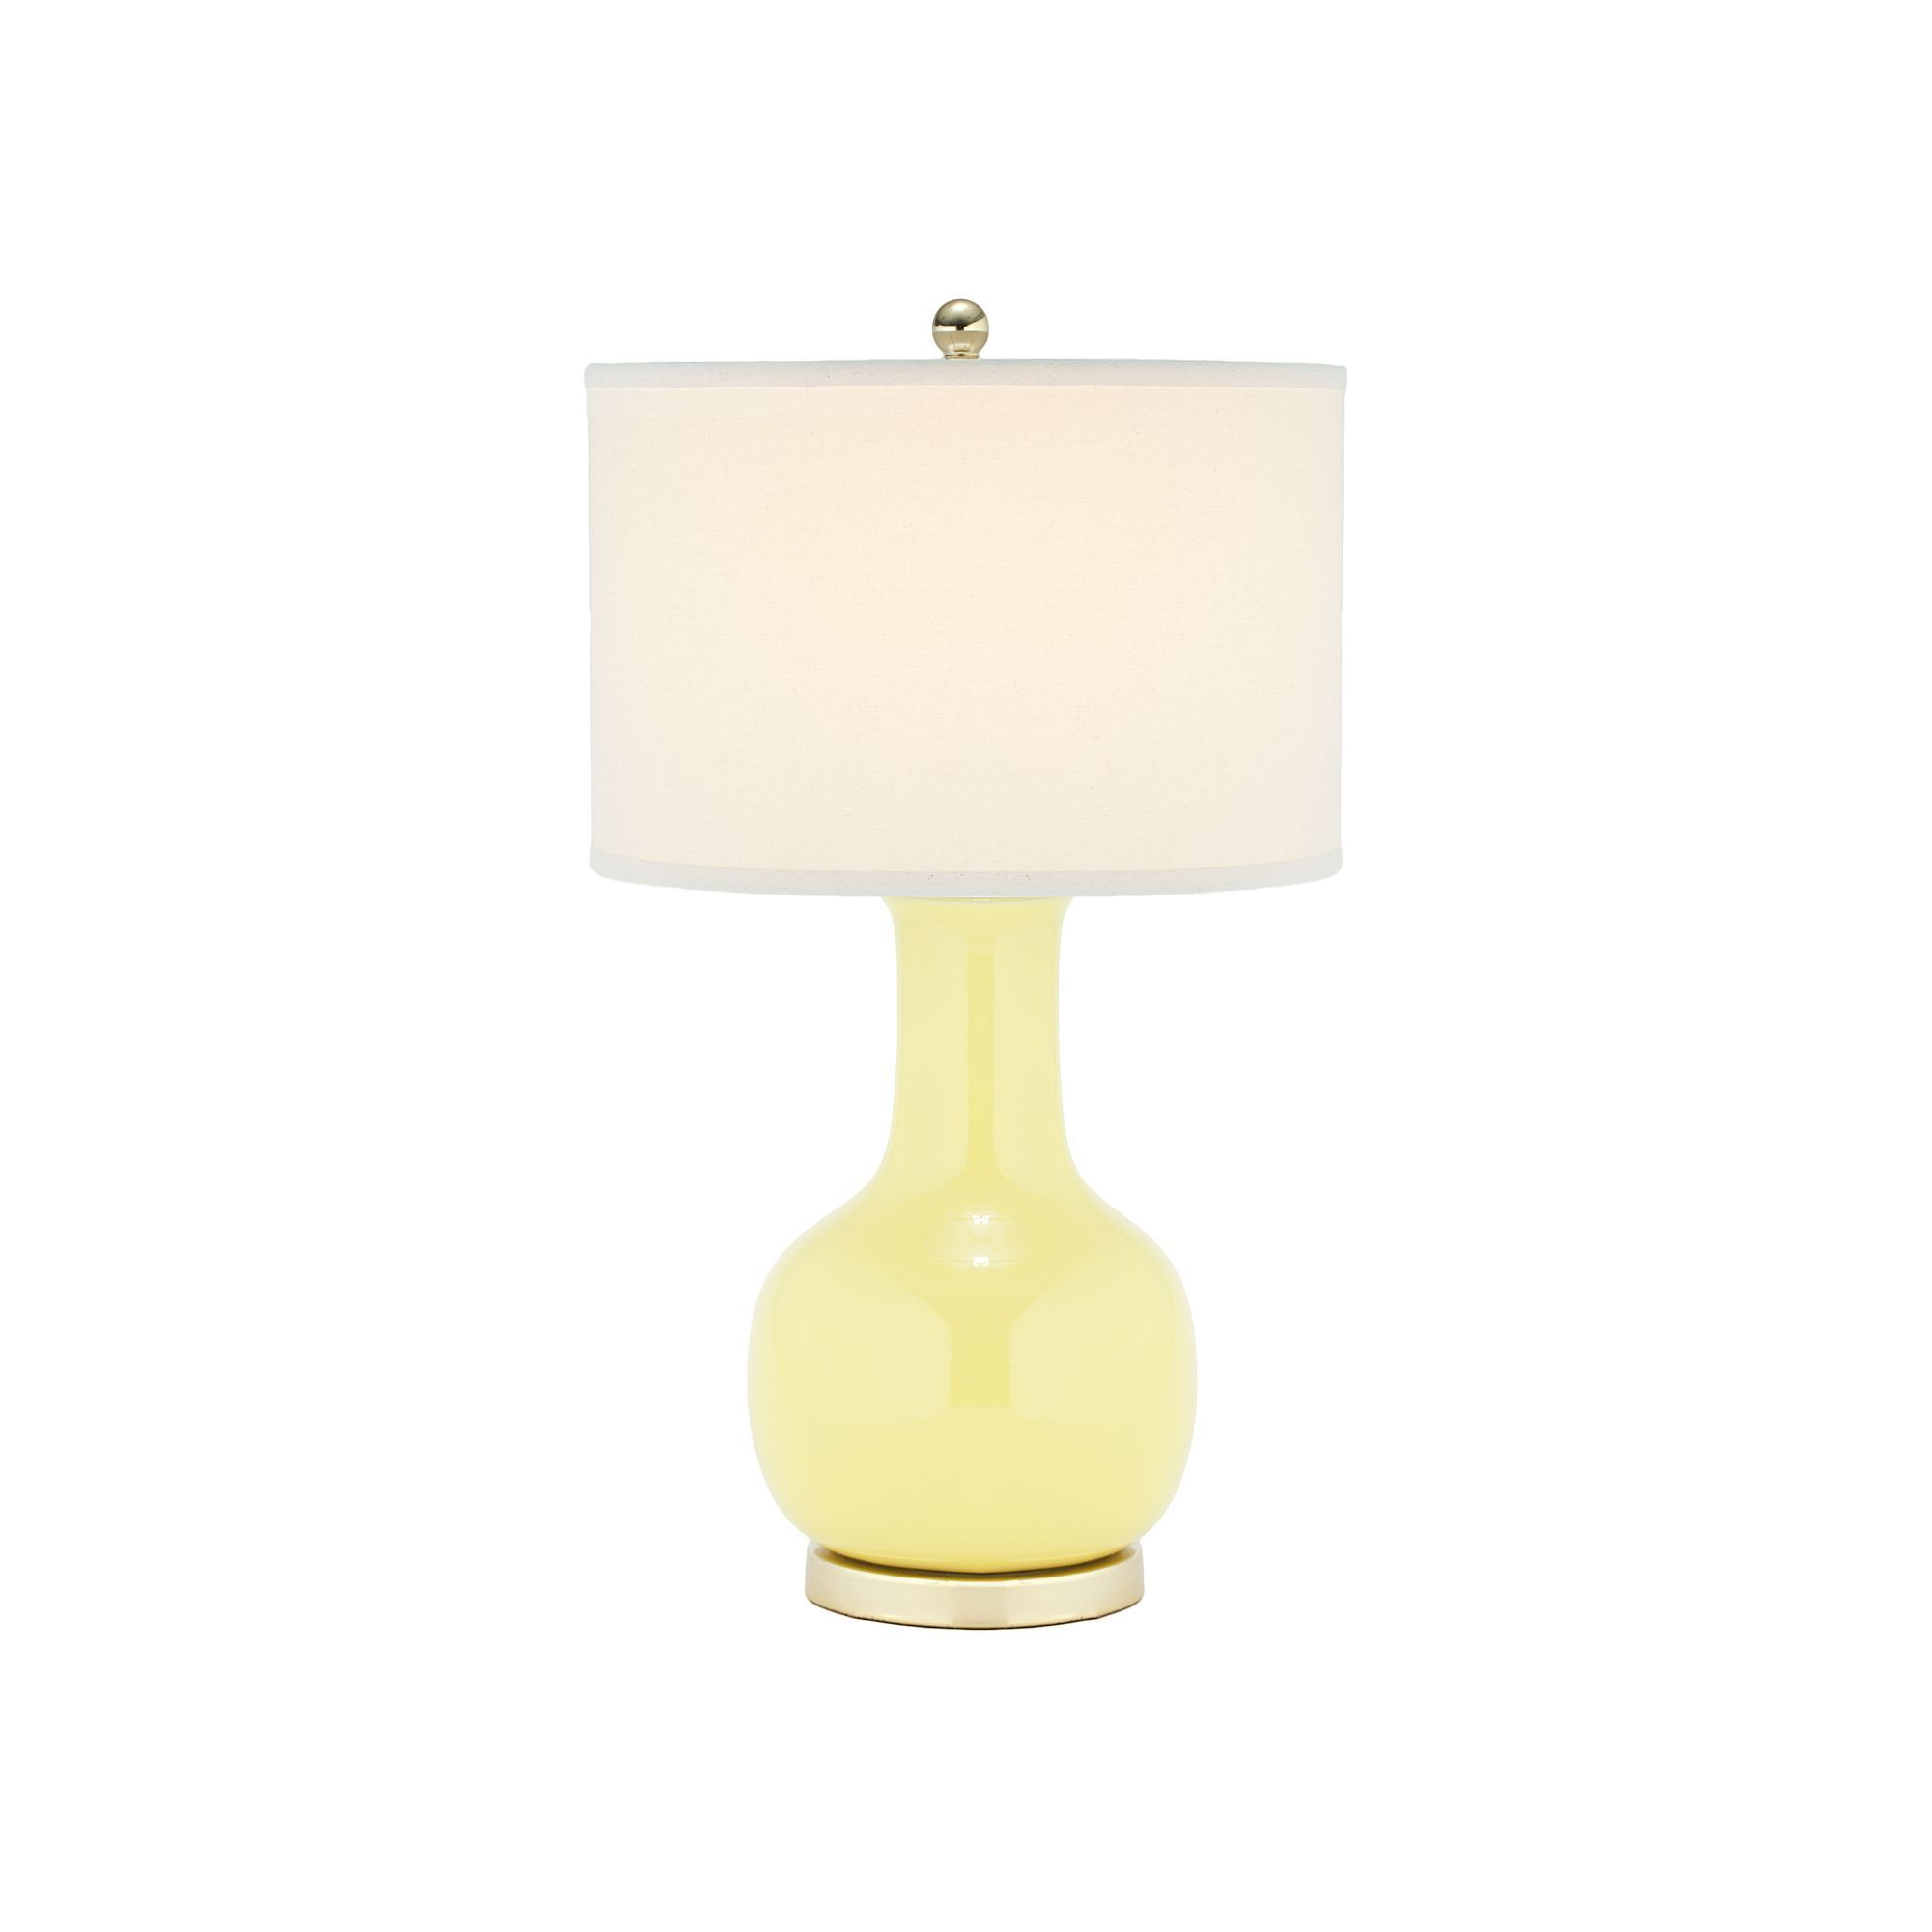 Kohls Table Lamps Glamorous Safavieh Paris Table Lamp Blue  Tables Products And Table Lamps Design Decoration